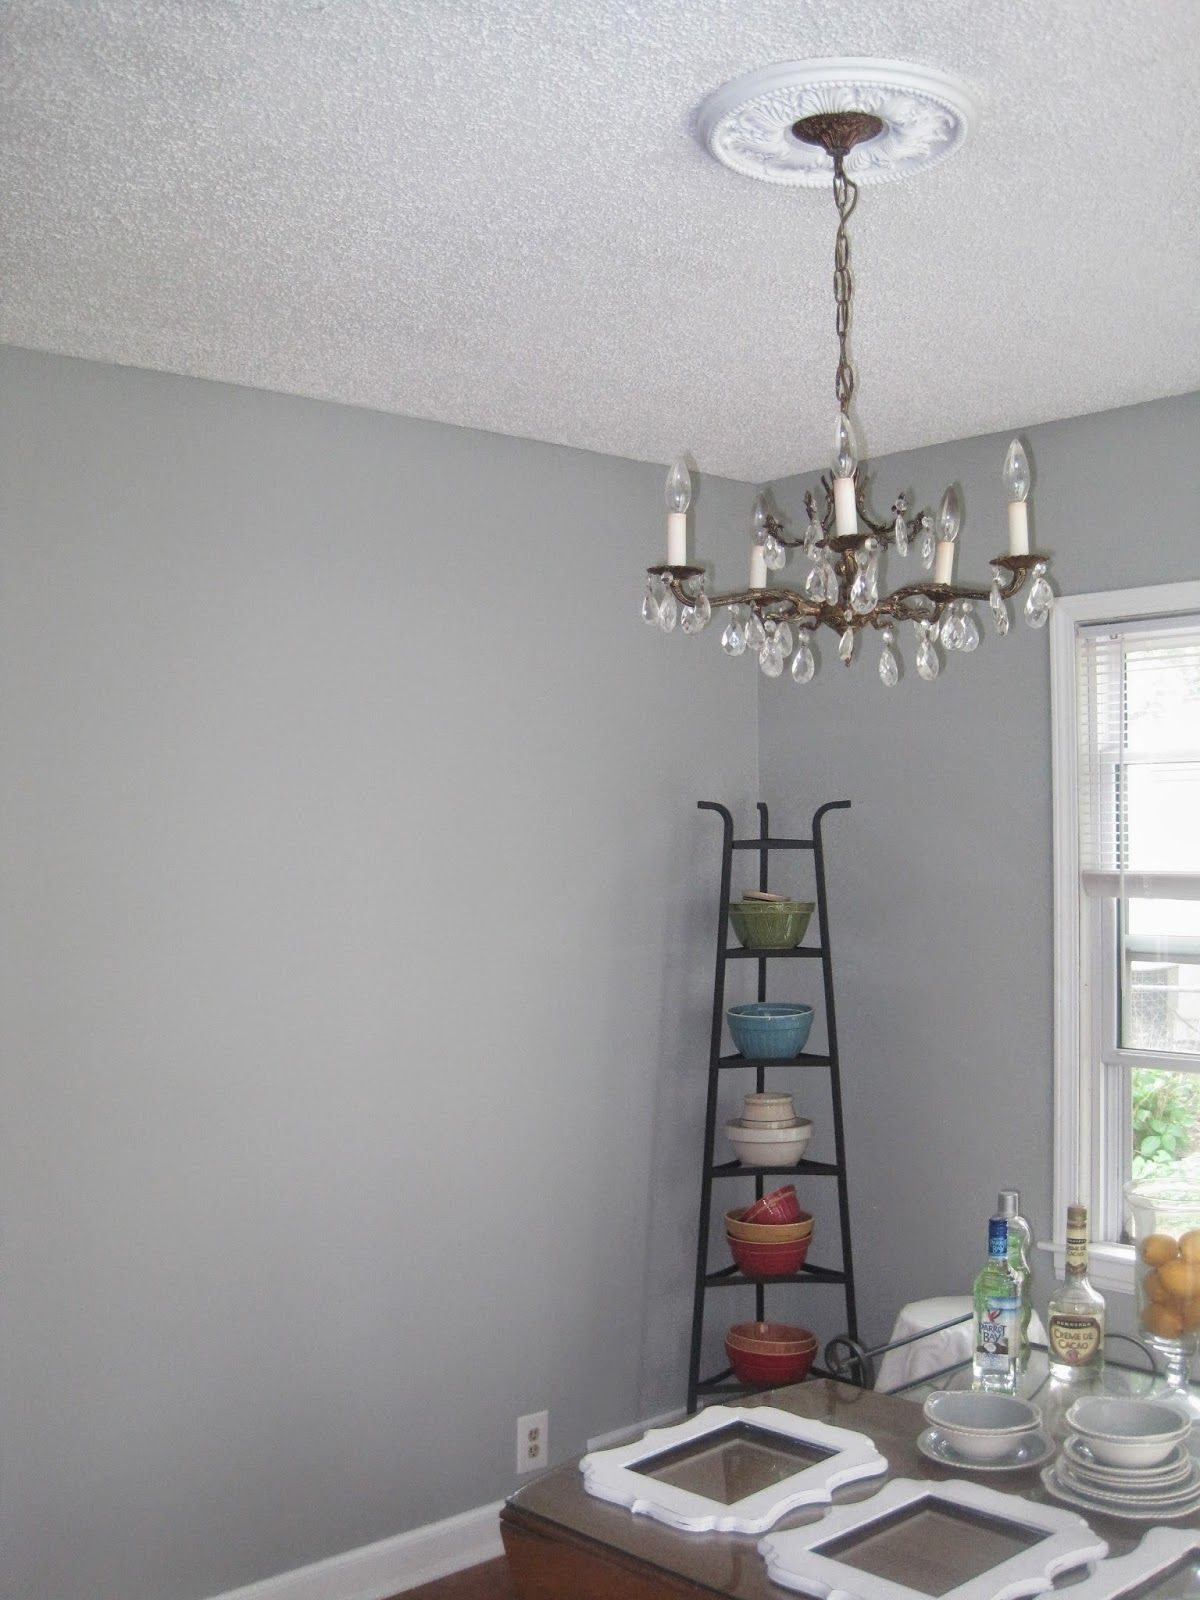 Paint Color For Kitchen Walls Above Chair Rail Driftwood Gray By Martha